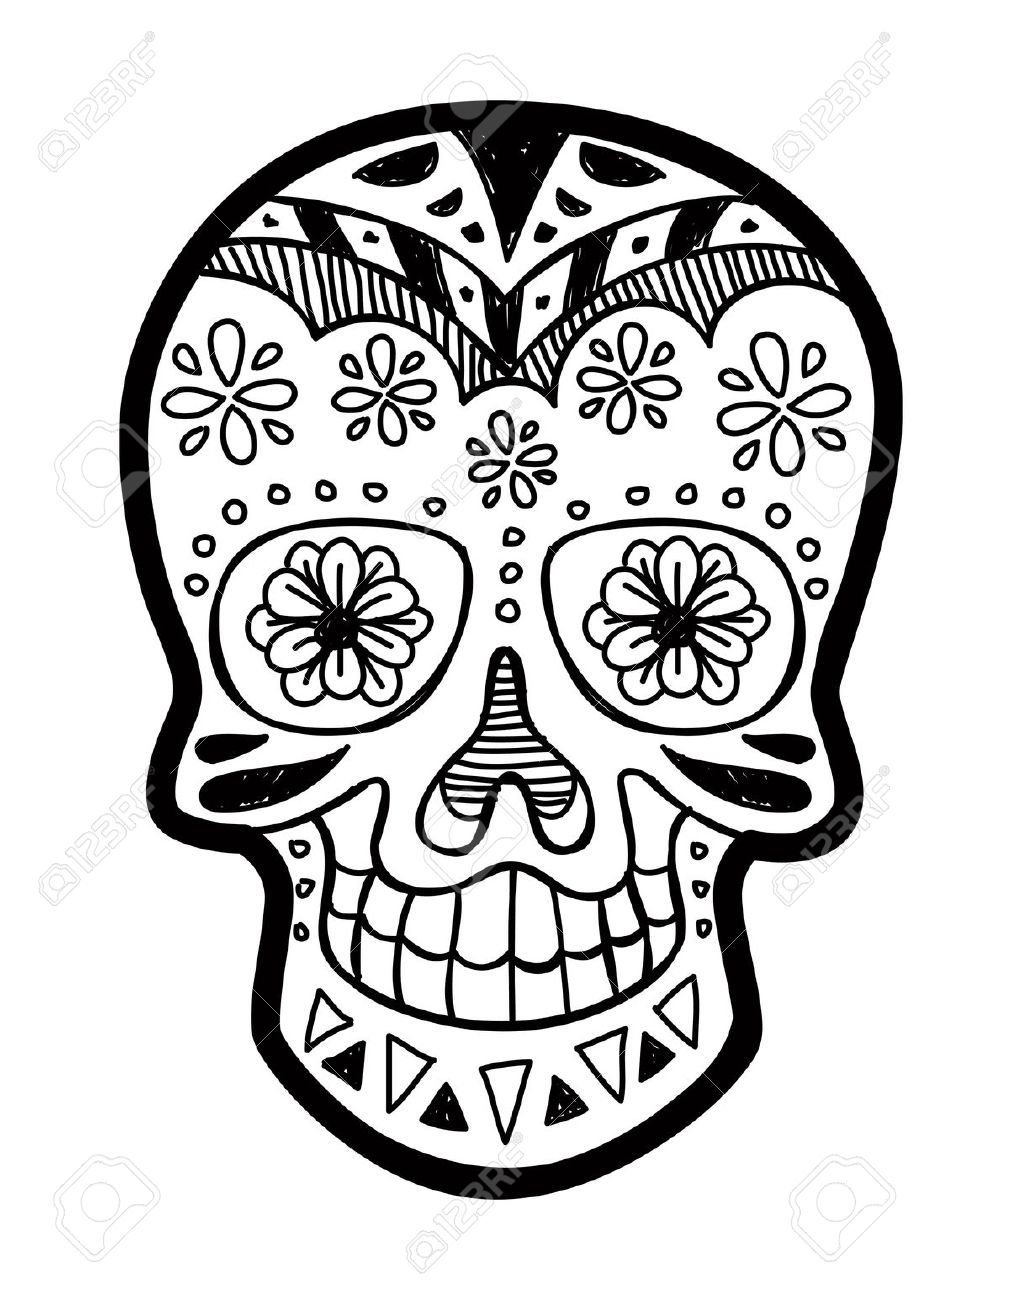 Sugar Skull Royalty Free Cliparts, Vectors, And Stock ...